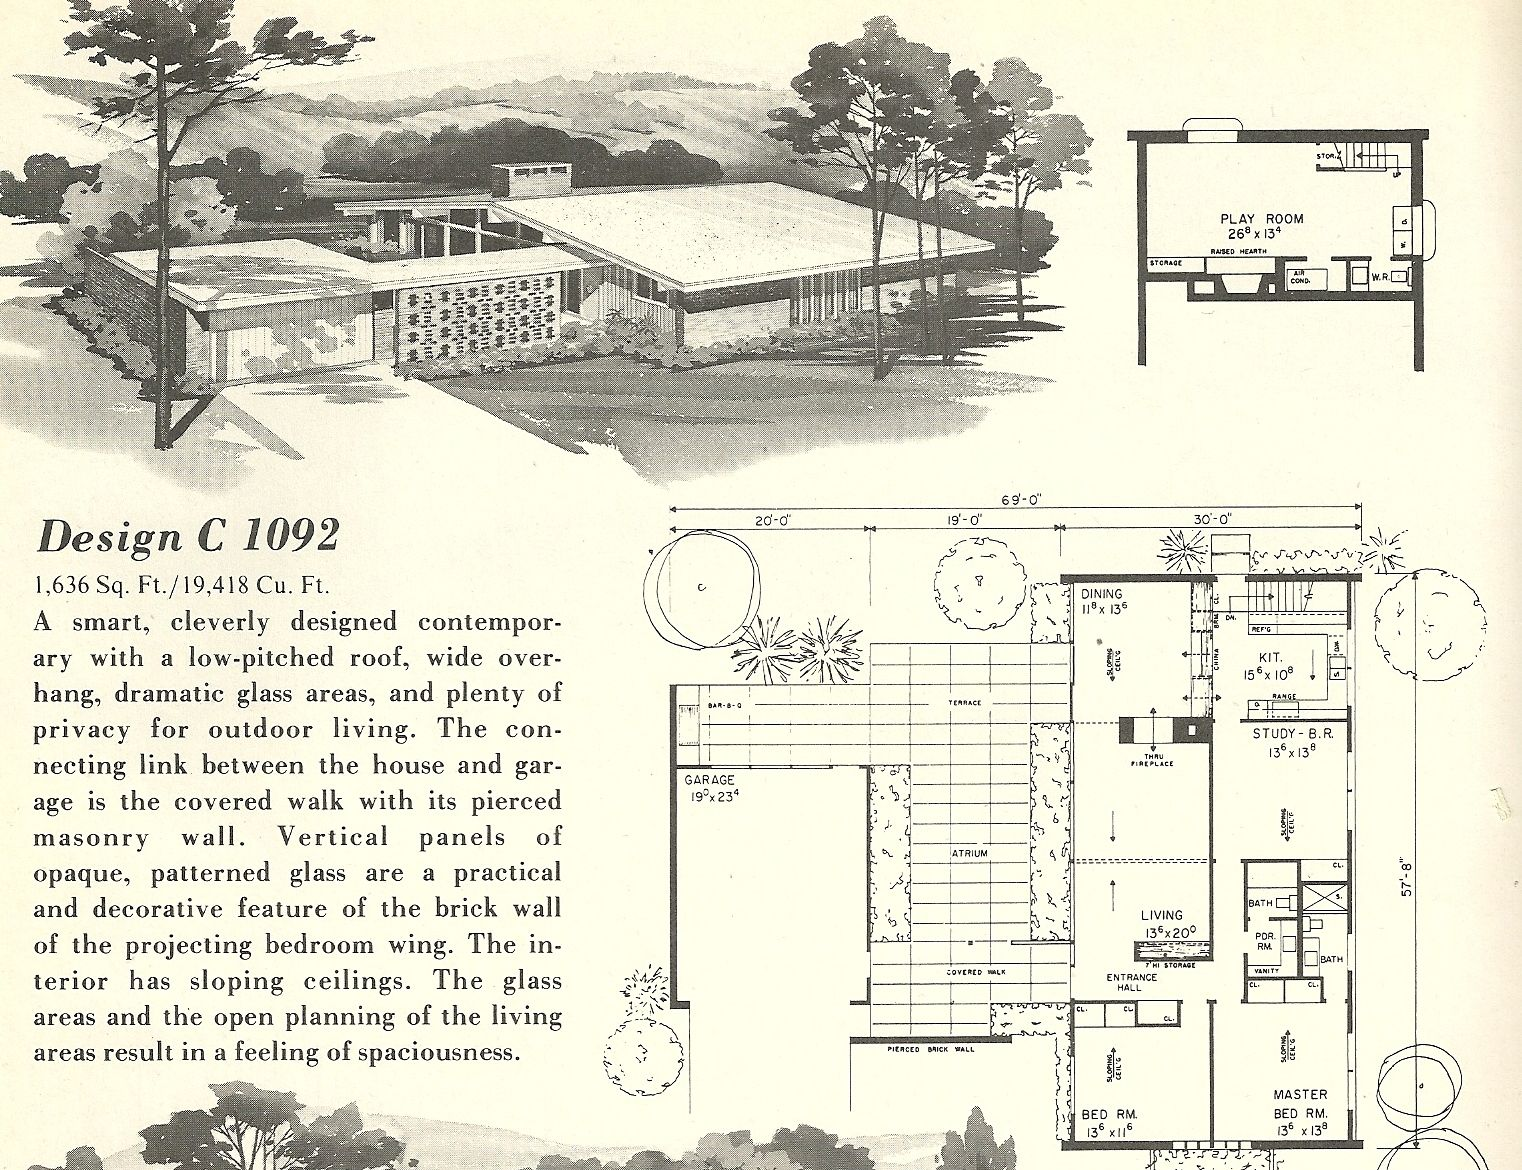 Mid Century Modern Home Plans mid century modern house plans | vintage house plans 1960s